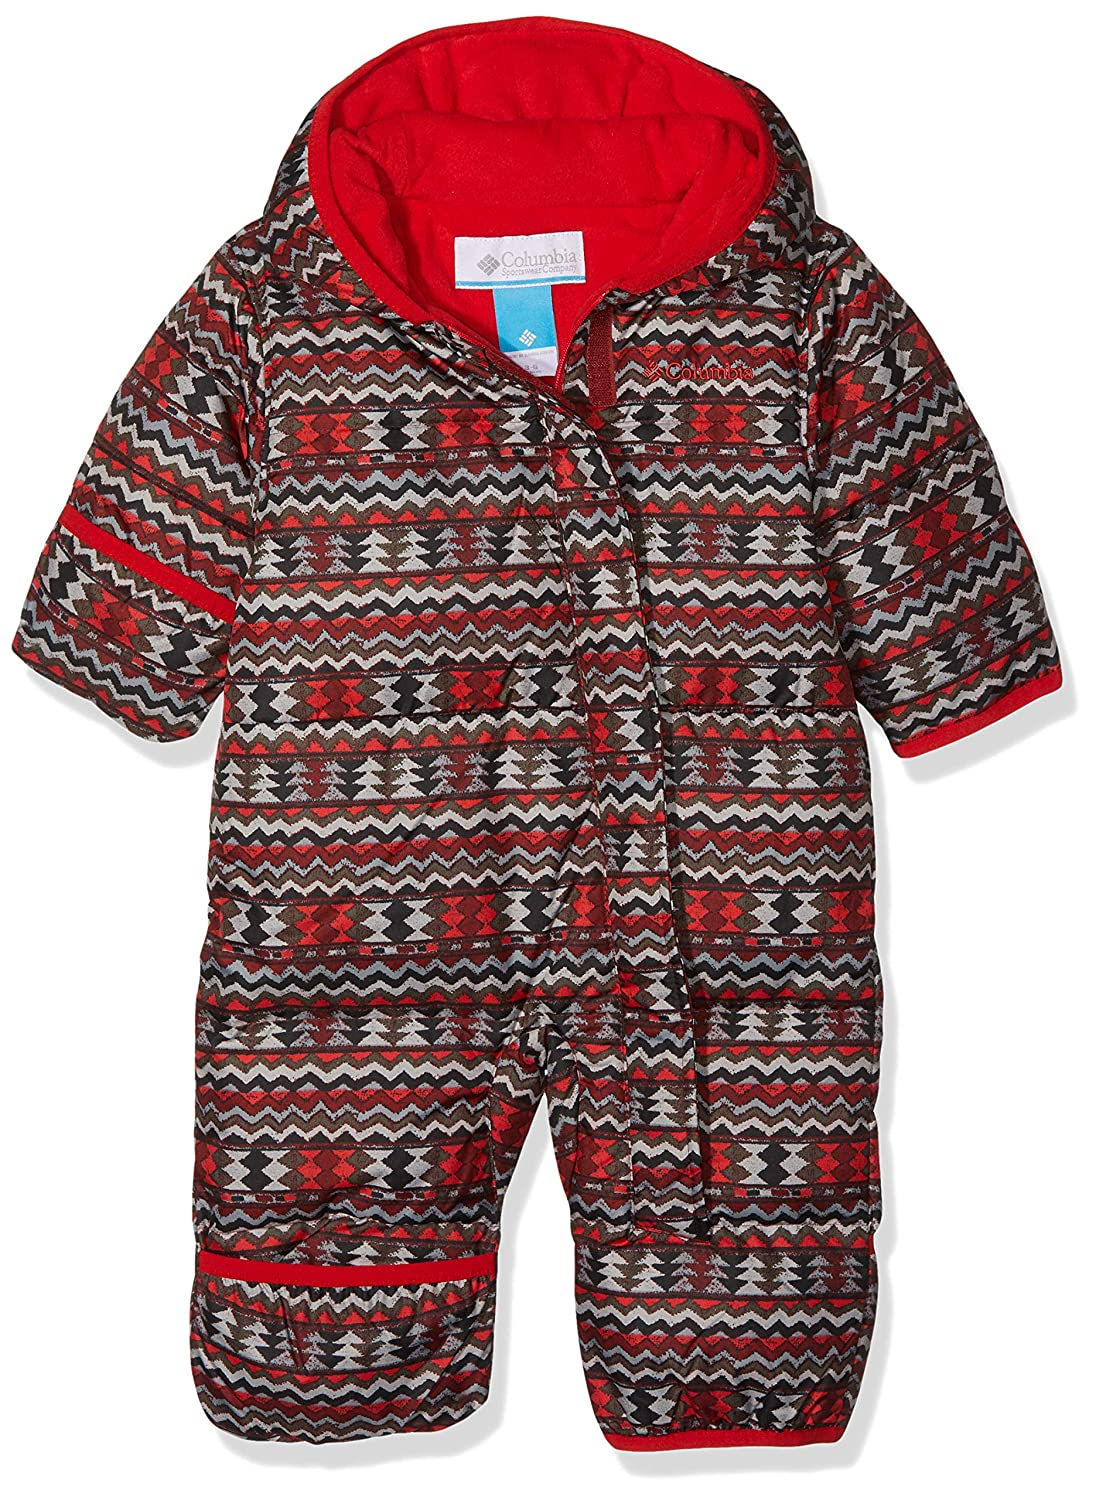 Columbia Snuggly Bunny Bunting Red Element Zigzag//Red Spark 18//24 Messi Rosso Tuta da Neonato Unisex-Bimbi 0-24